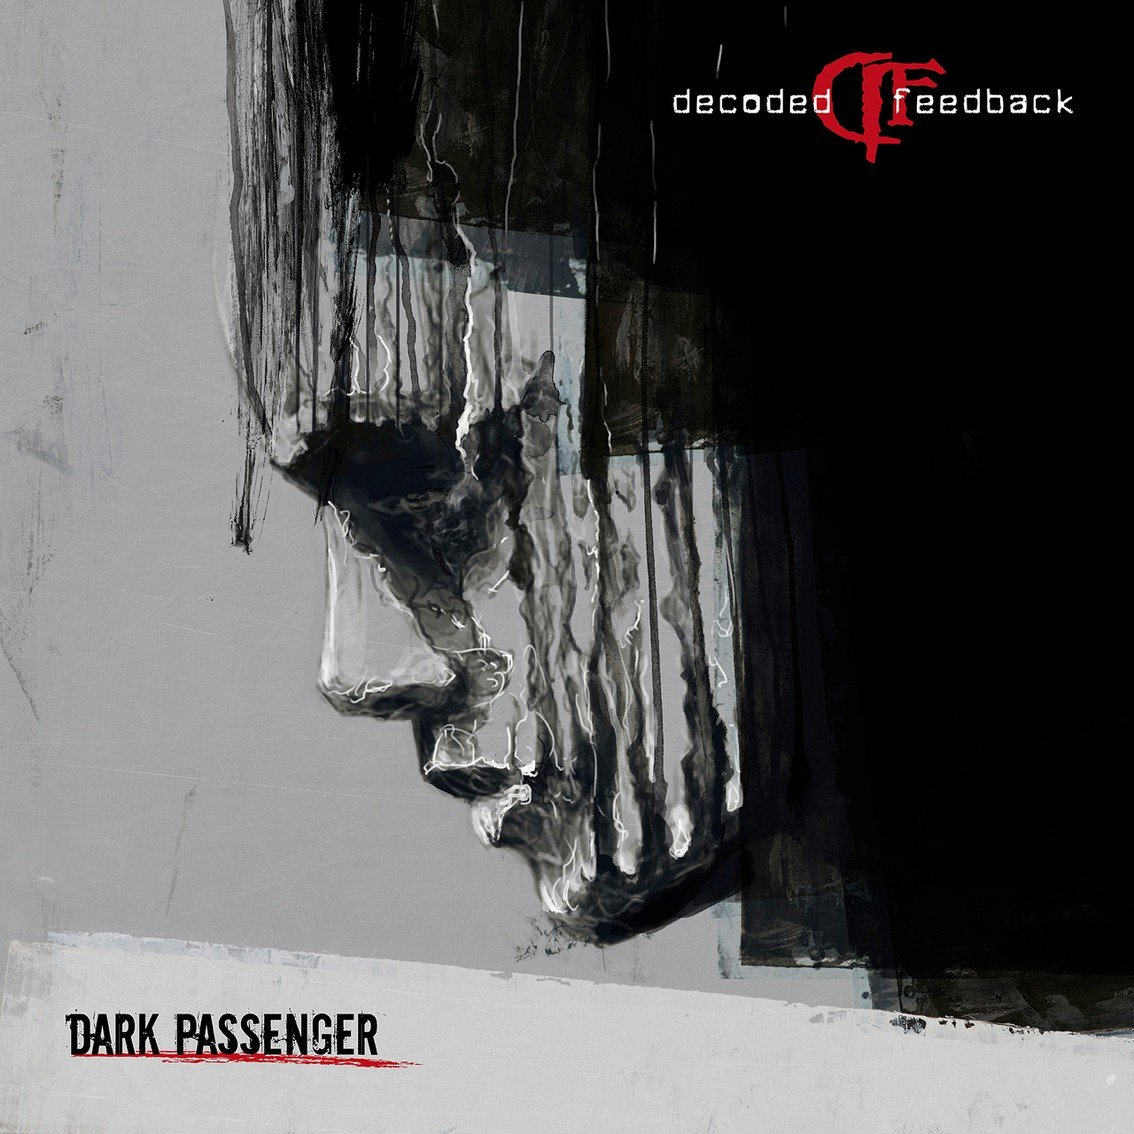 Decoded Feedback returns with'Dark Passenger' album - listen to the first single!